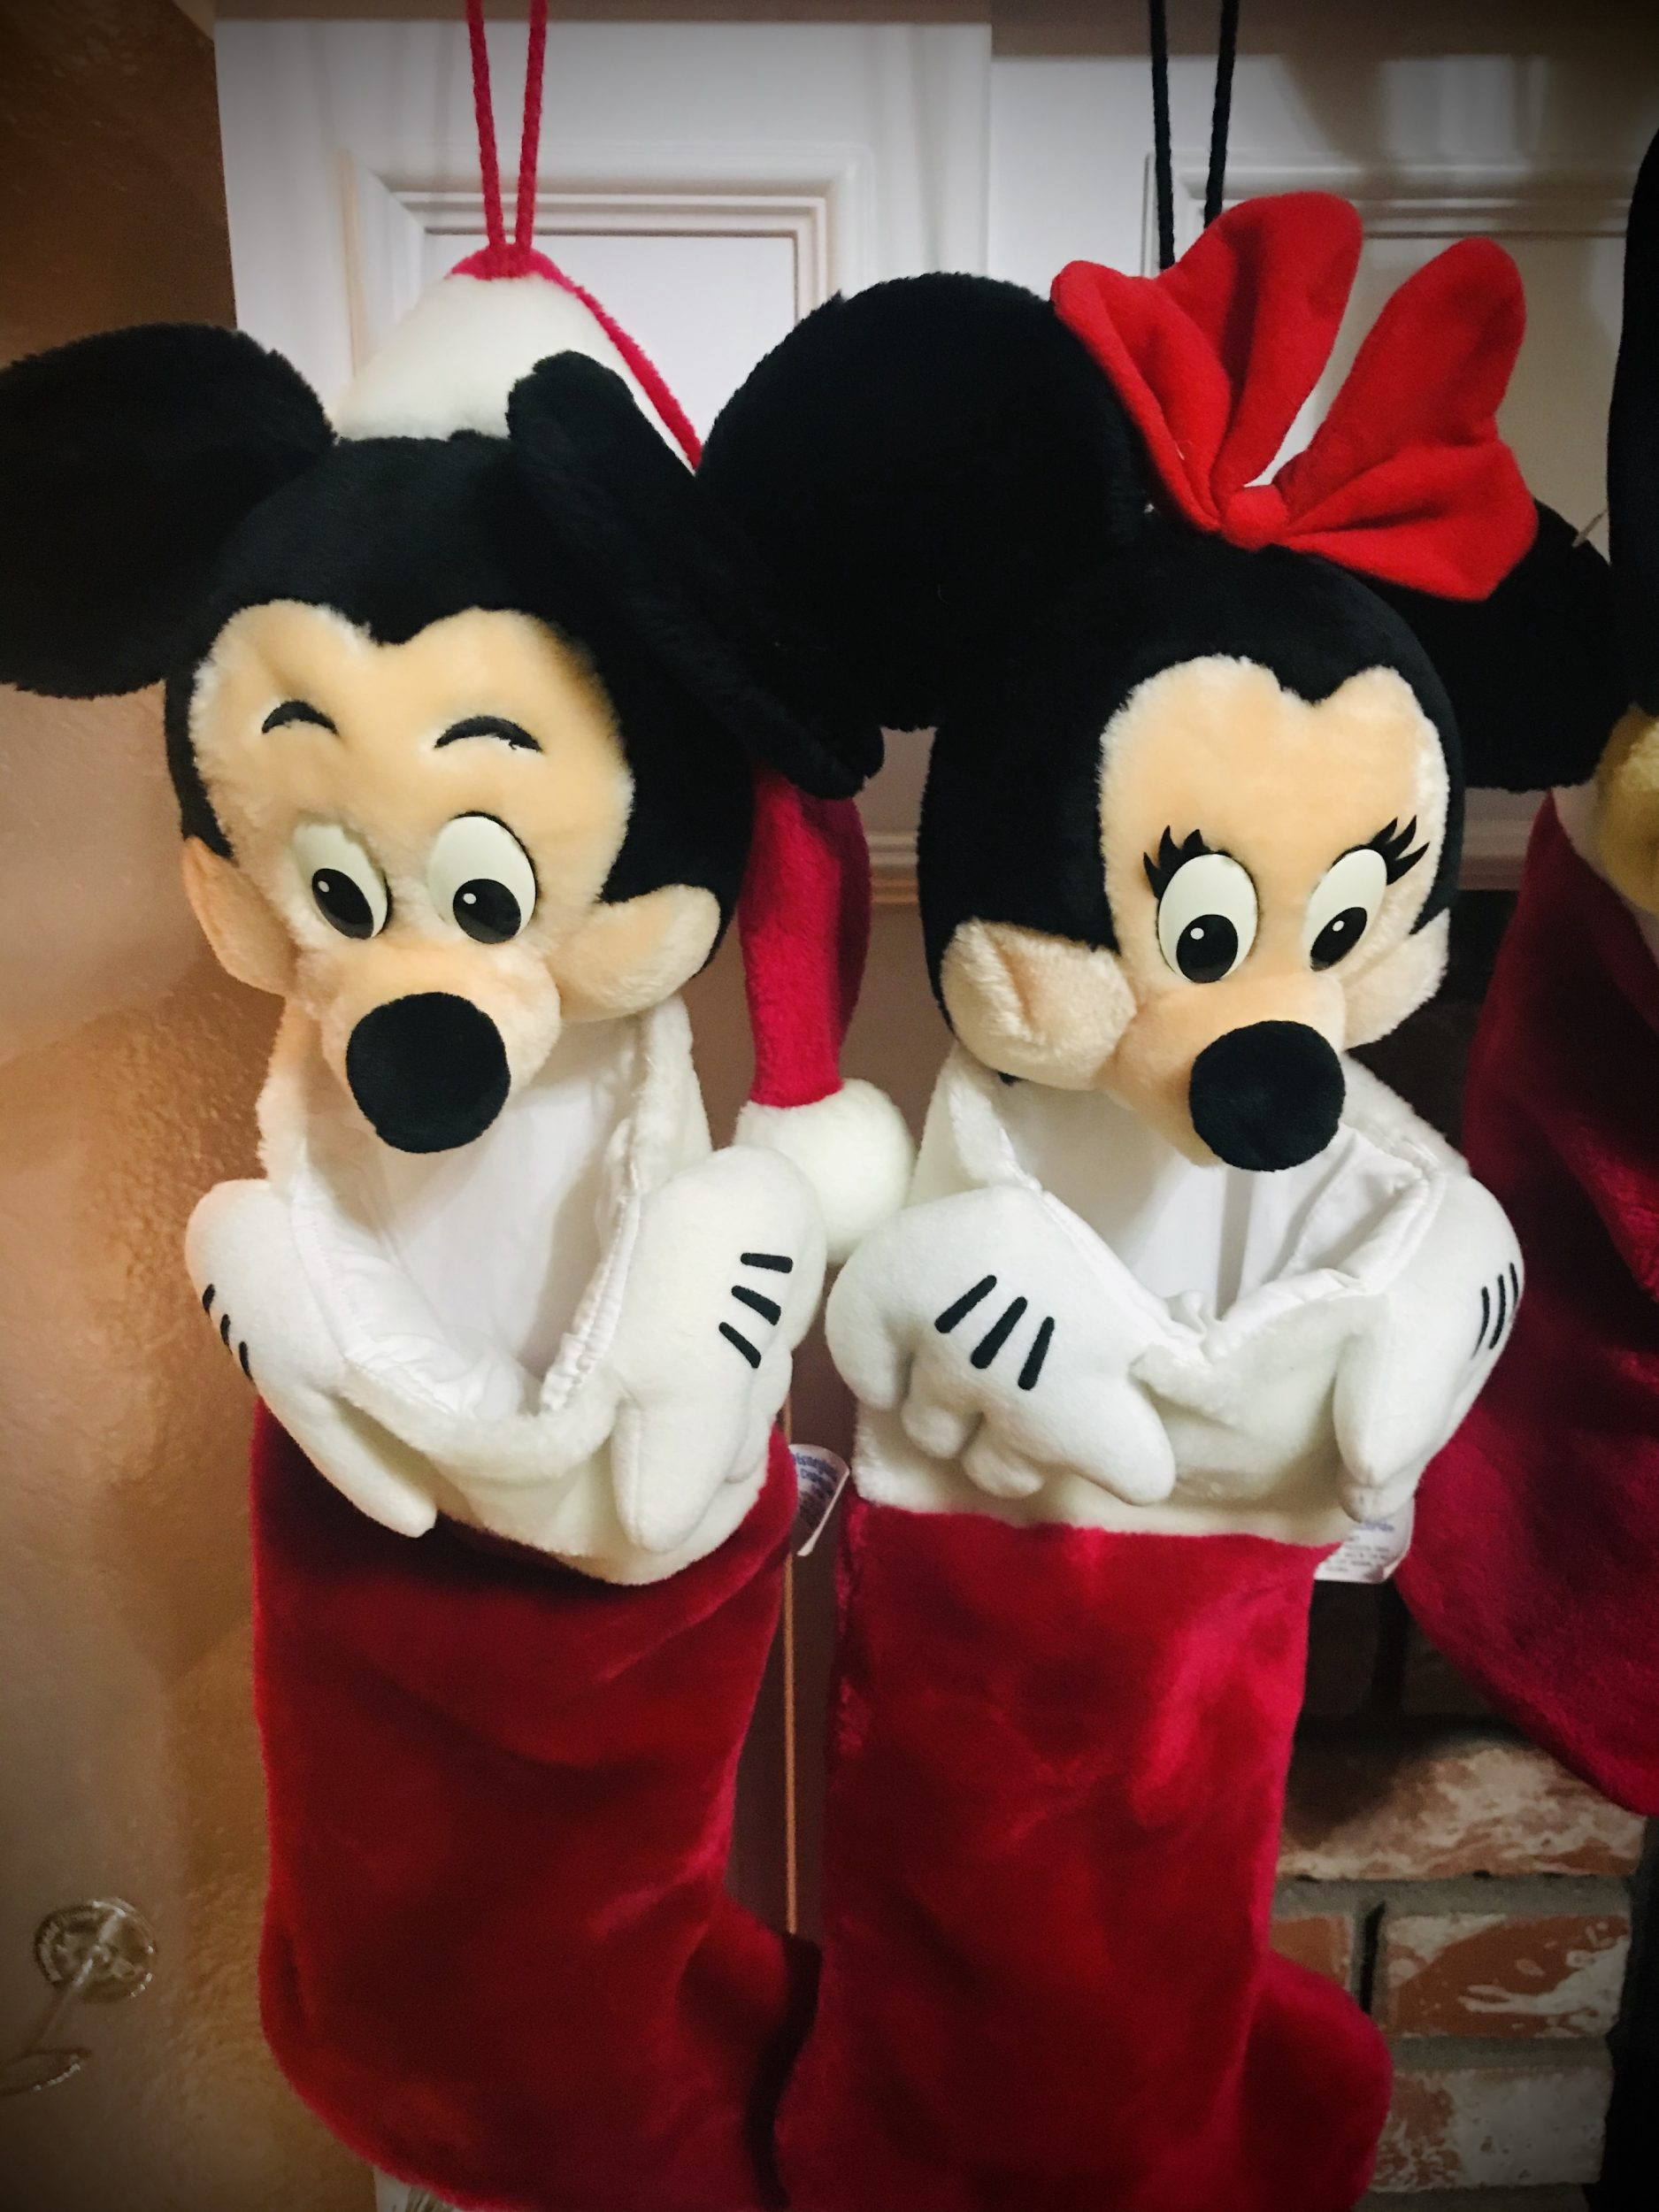 Mickey & Minnie Christmas Stockings purchased in 1995